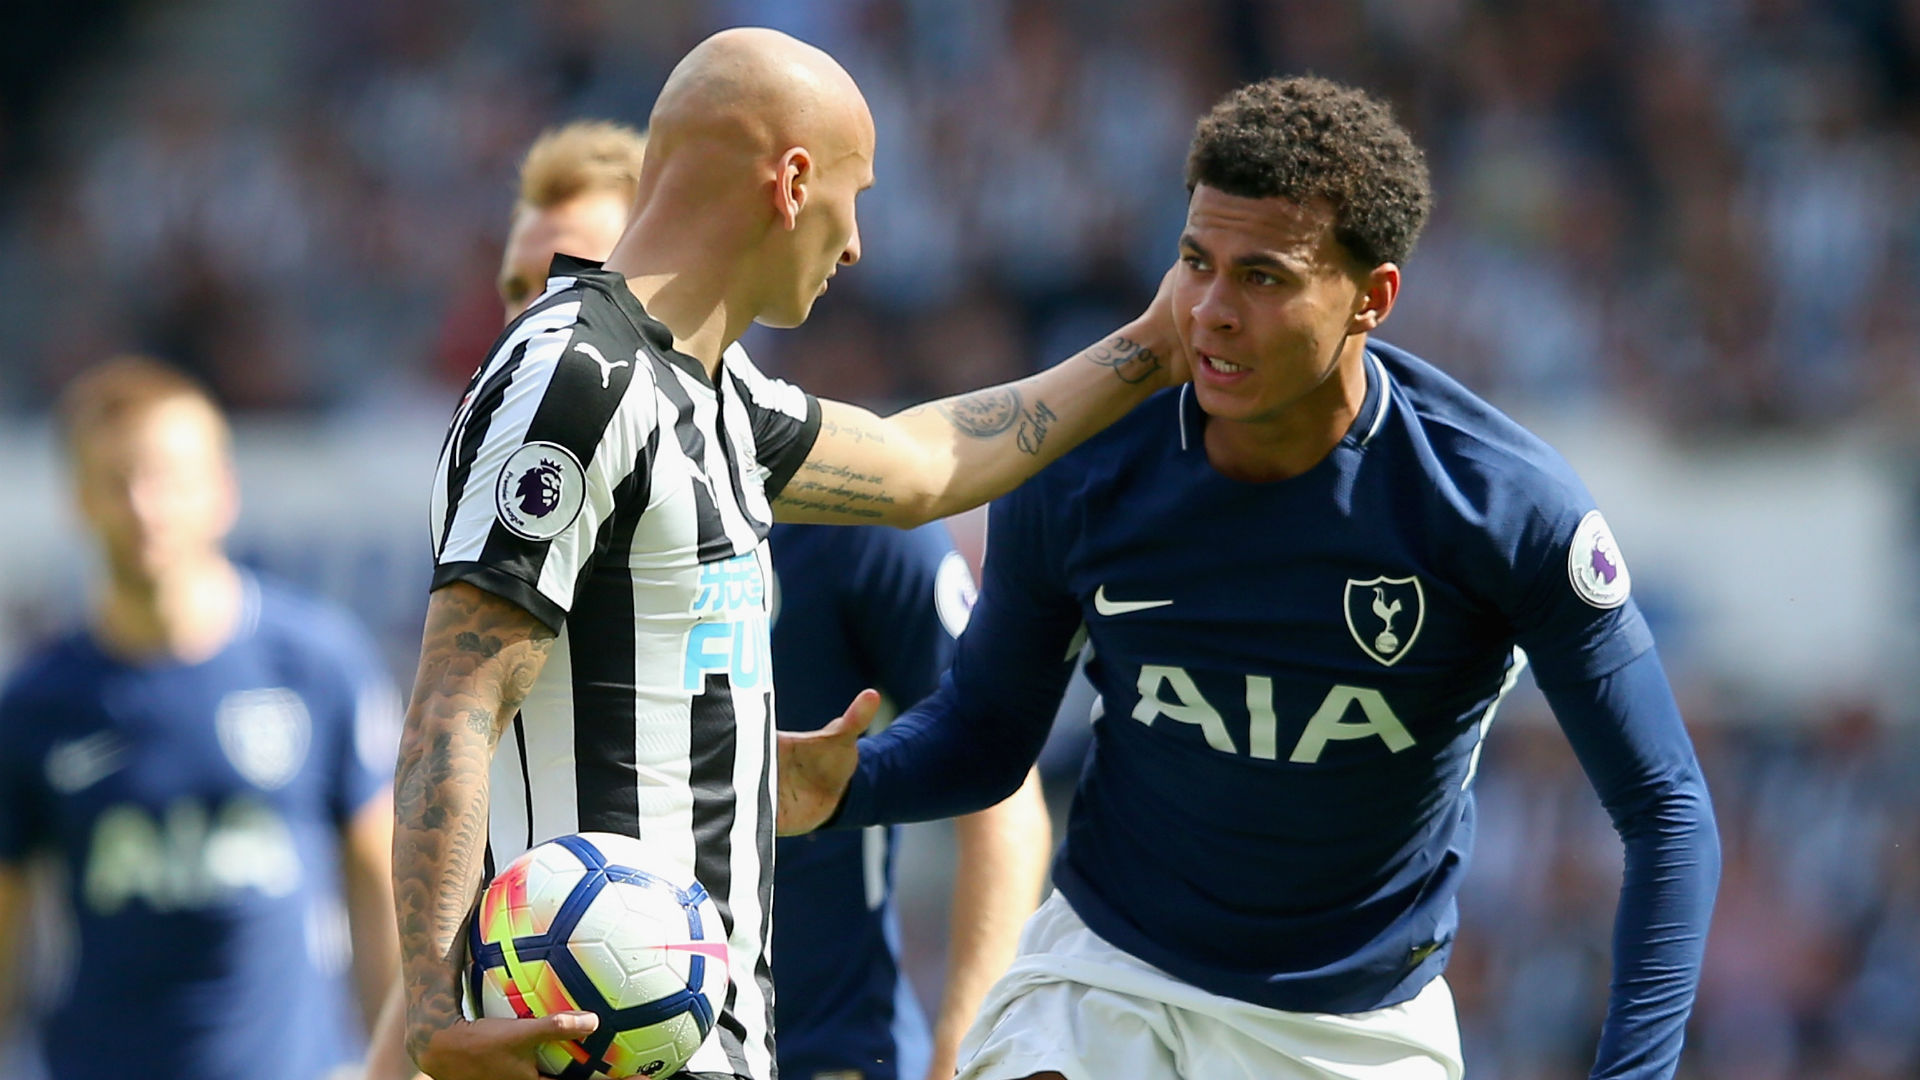 Nightmare start for Newcastle after Captain Shelvey red card